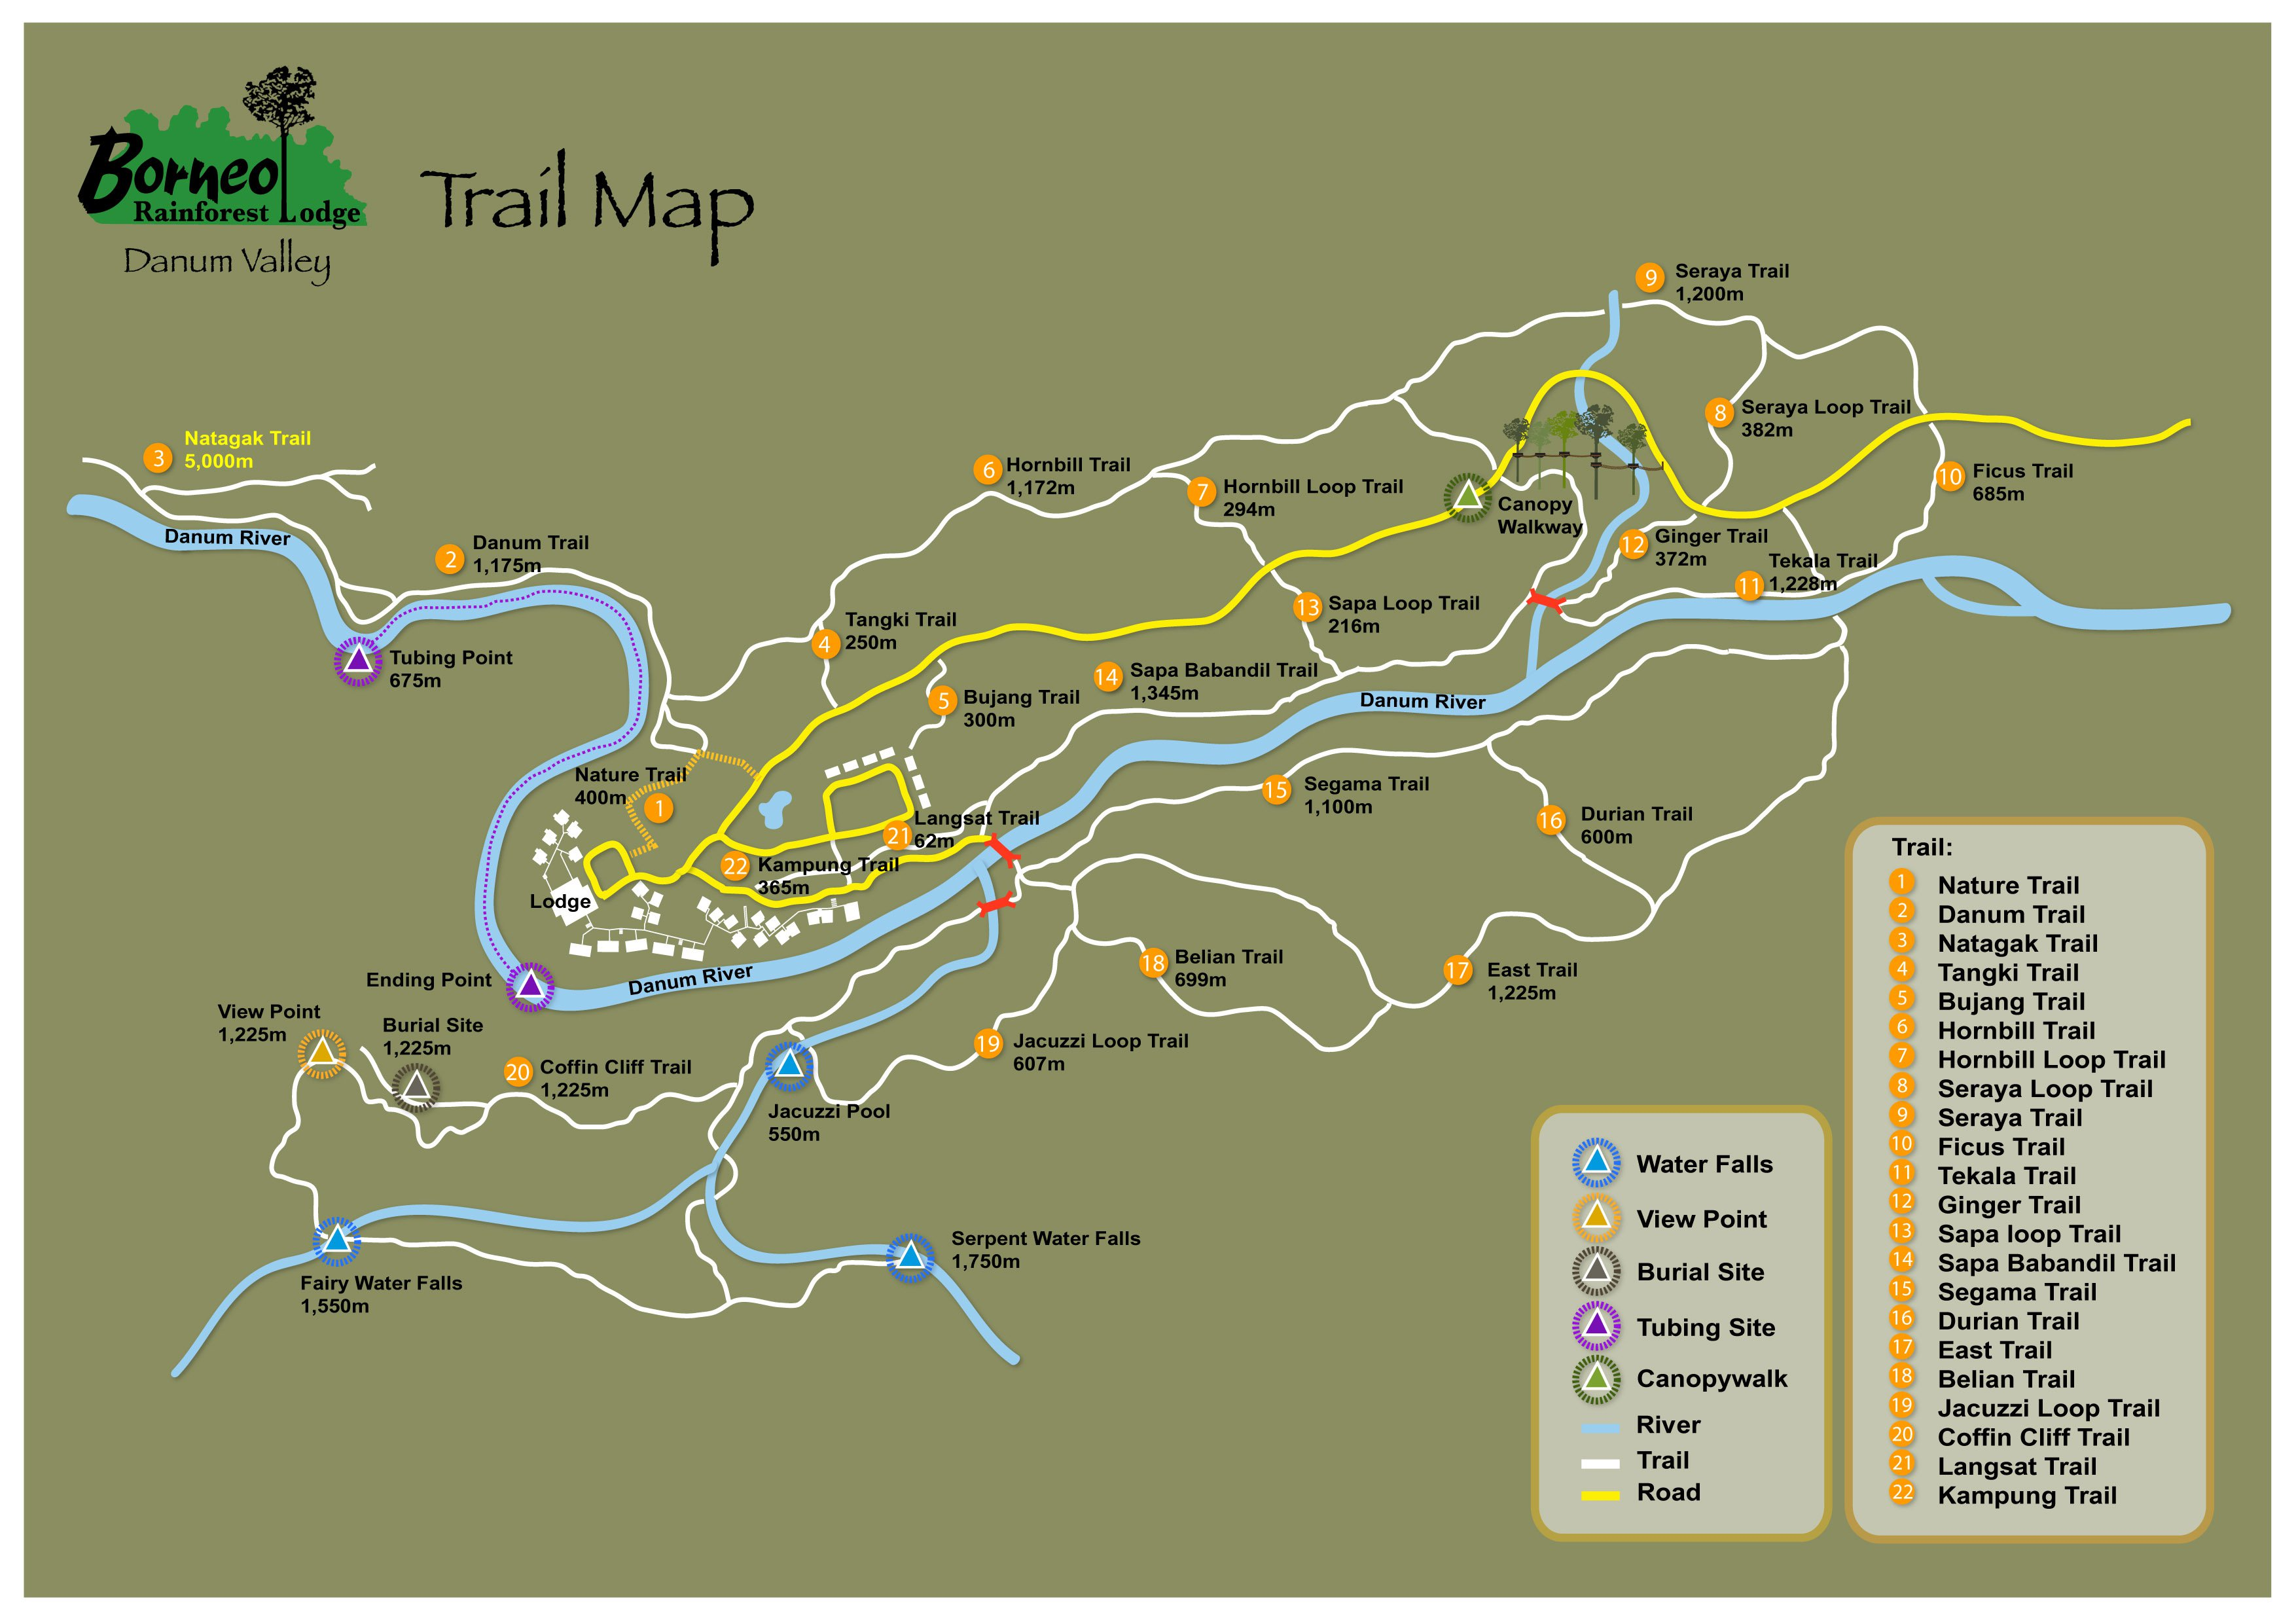 Trail map.jpg